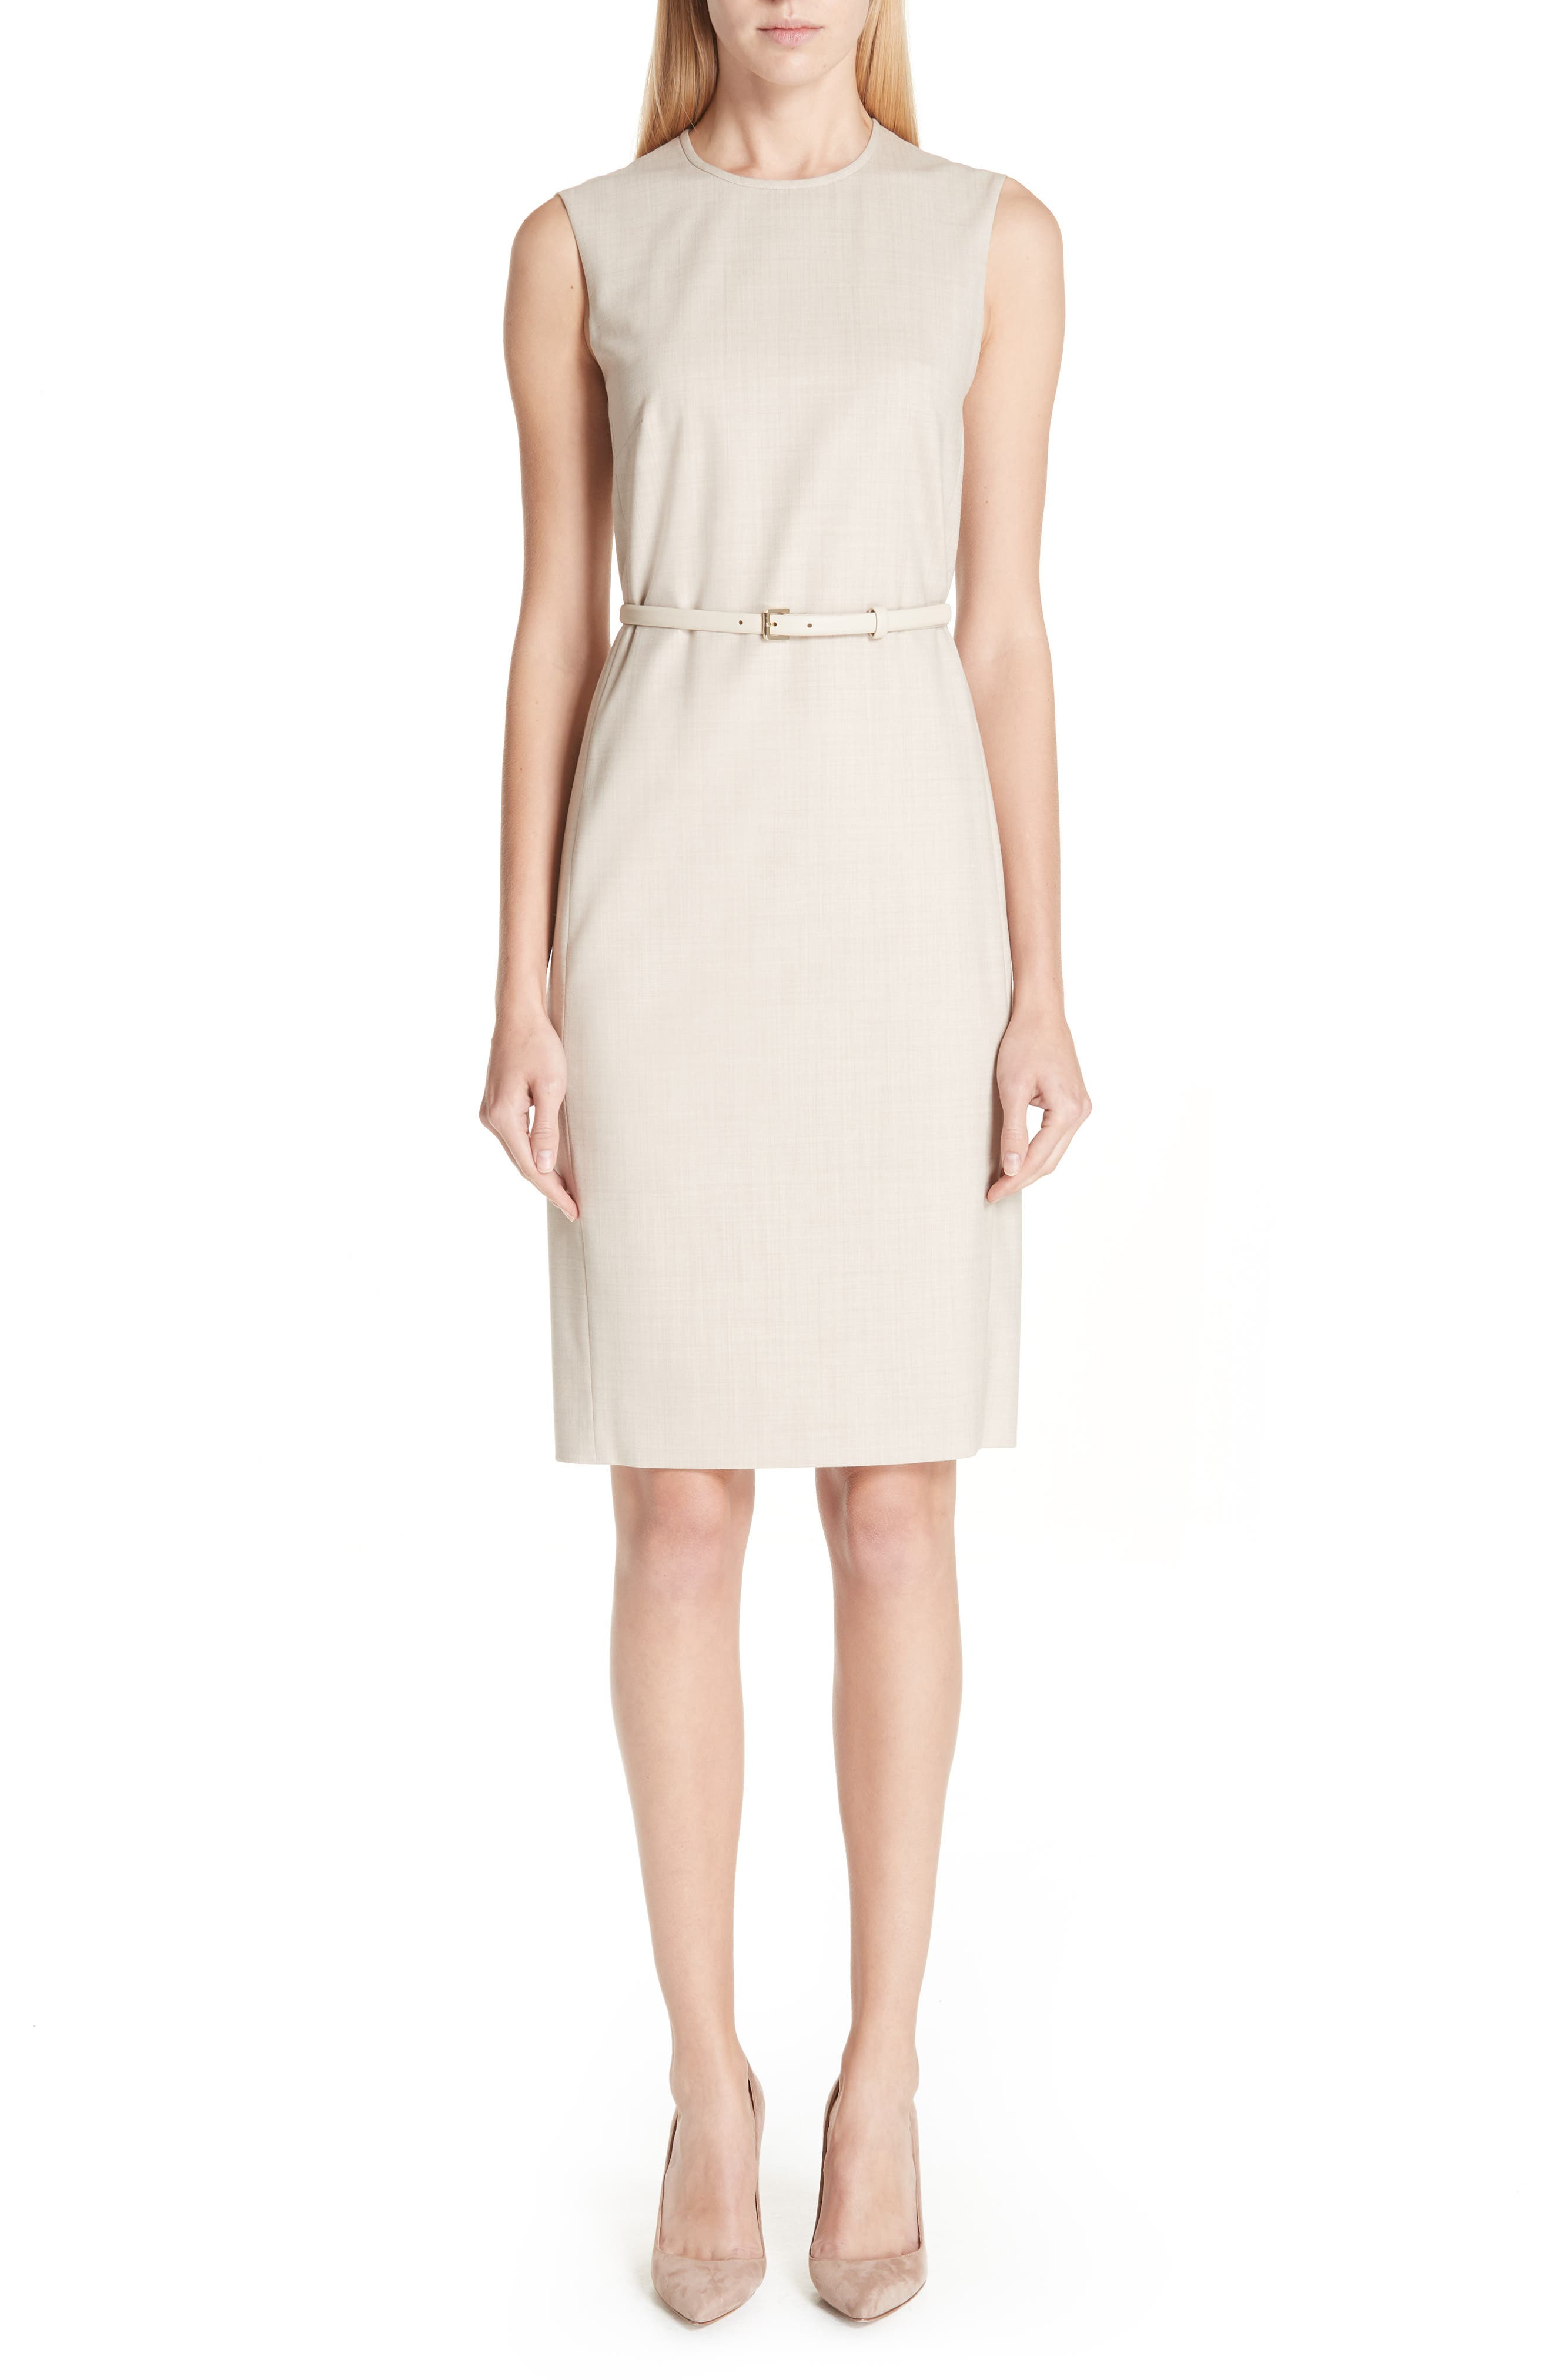 MAX MARA Petra Stretch Wool Dress, Main, color, 264